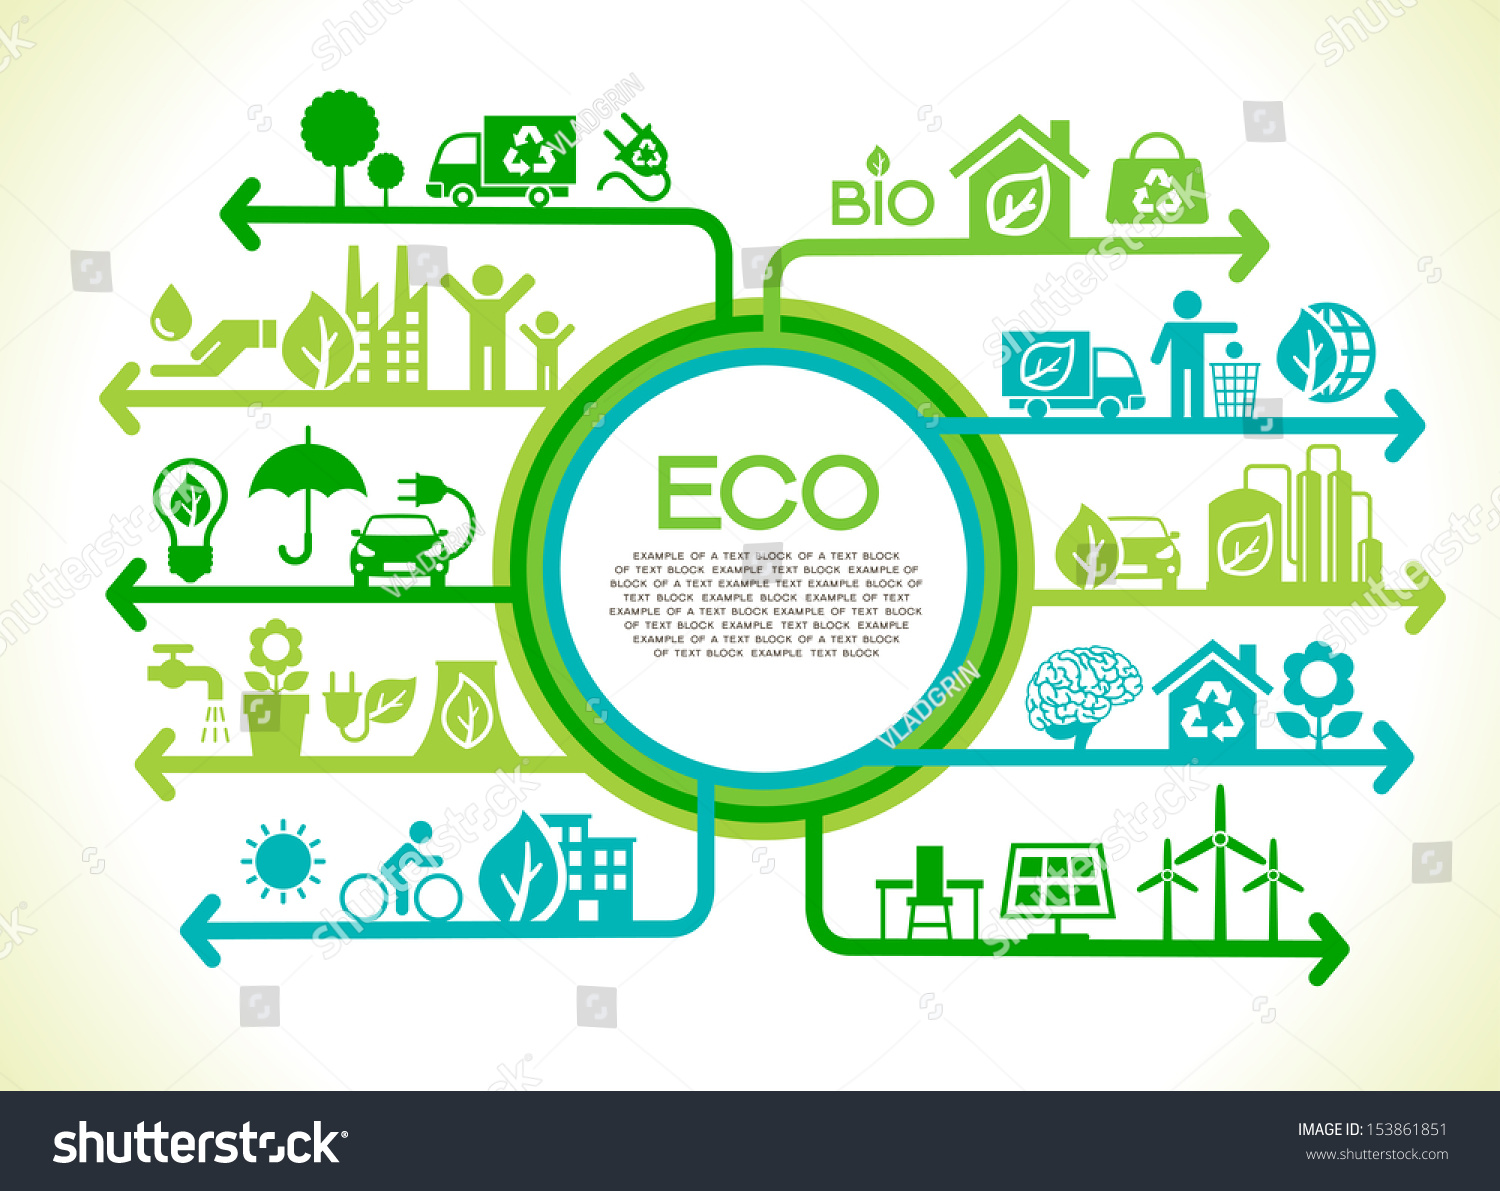 eco concept tree earth nature green stock vector 153861851 shutterstock. Black Bedroom Furniture Sets. Home Design Ideas